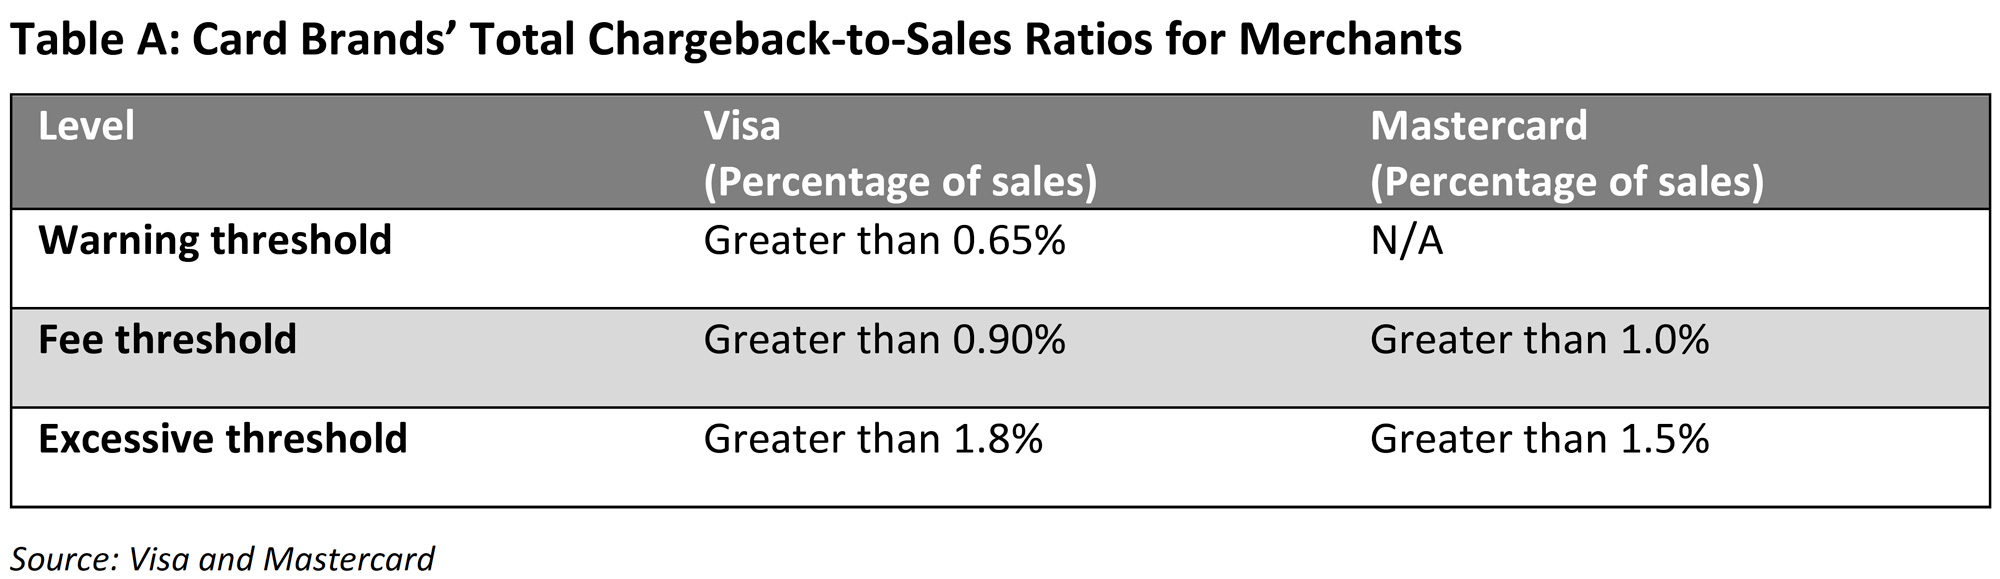 Table showing Visa and Mastercard's warning, fee, and excessive thresholds for total chargeback-to-sales ratios for merchants, courtesy of Visa and Mastercard.